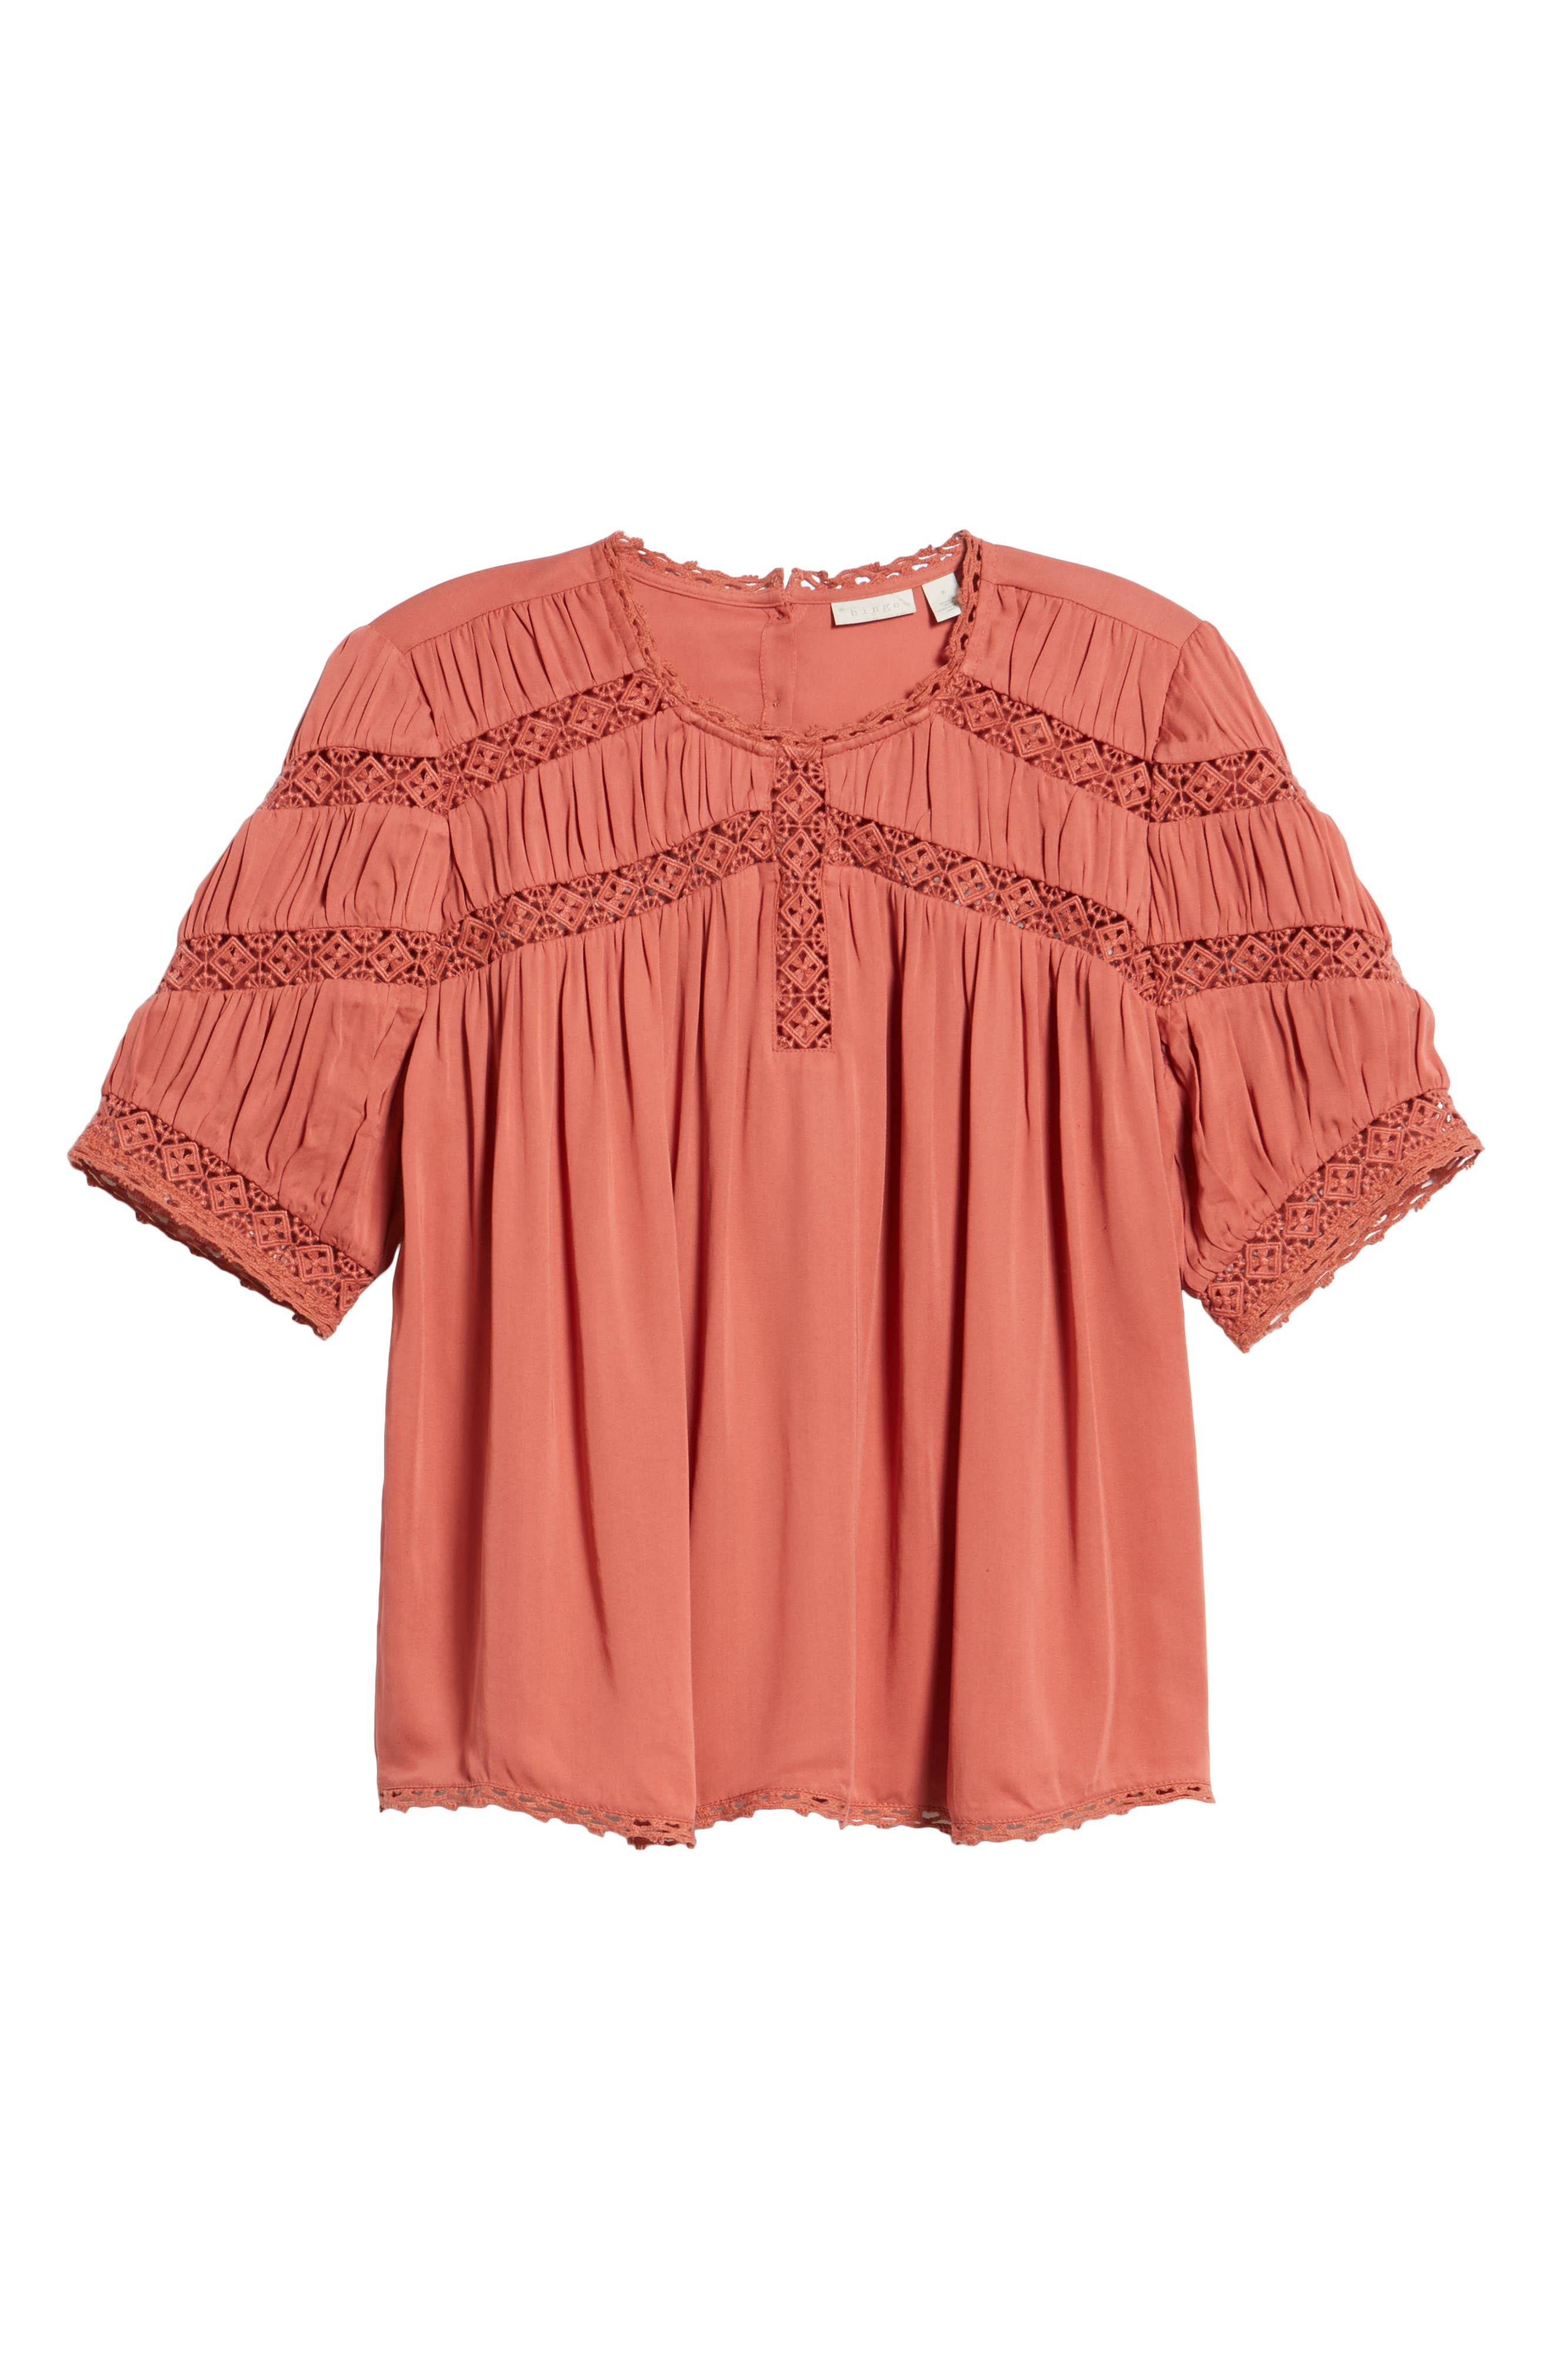 HINGE,                             Gathered Lace Top,                             Alternate thumbnail 6, color,                             660